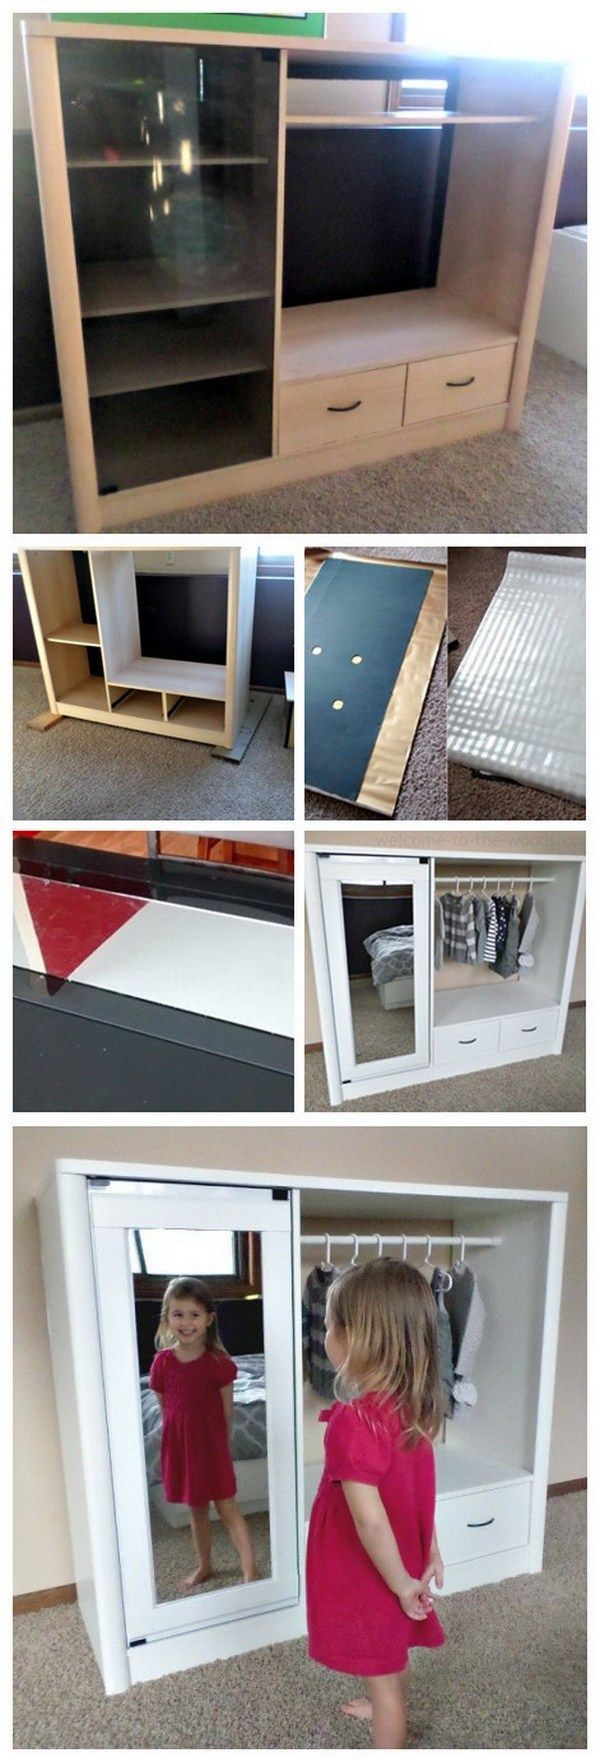 Entertainment Center Turned Kids Closet Armoire: Recreate an old tube TV entertainment center into a useful storage solution for your daughter's bedroom.